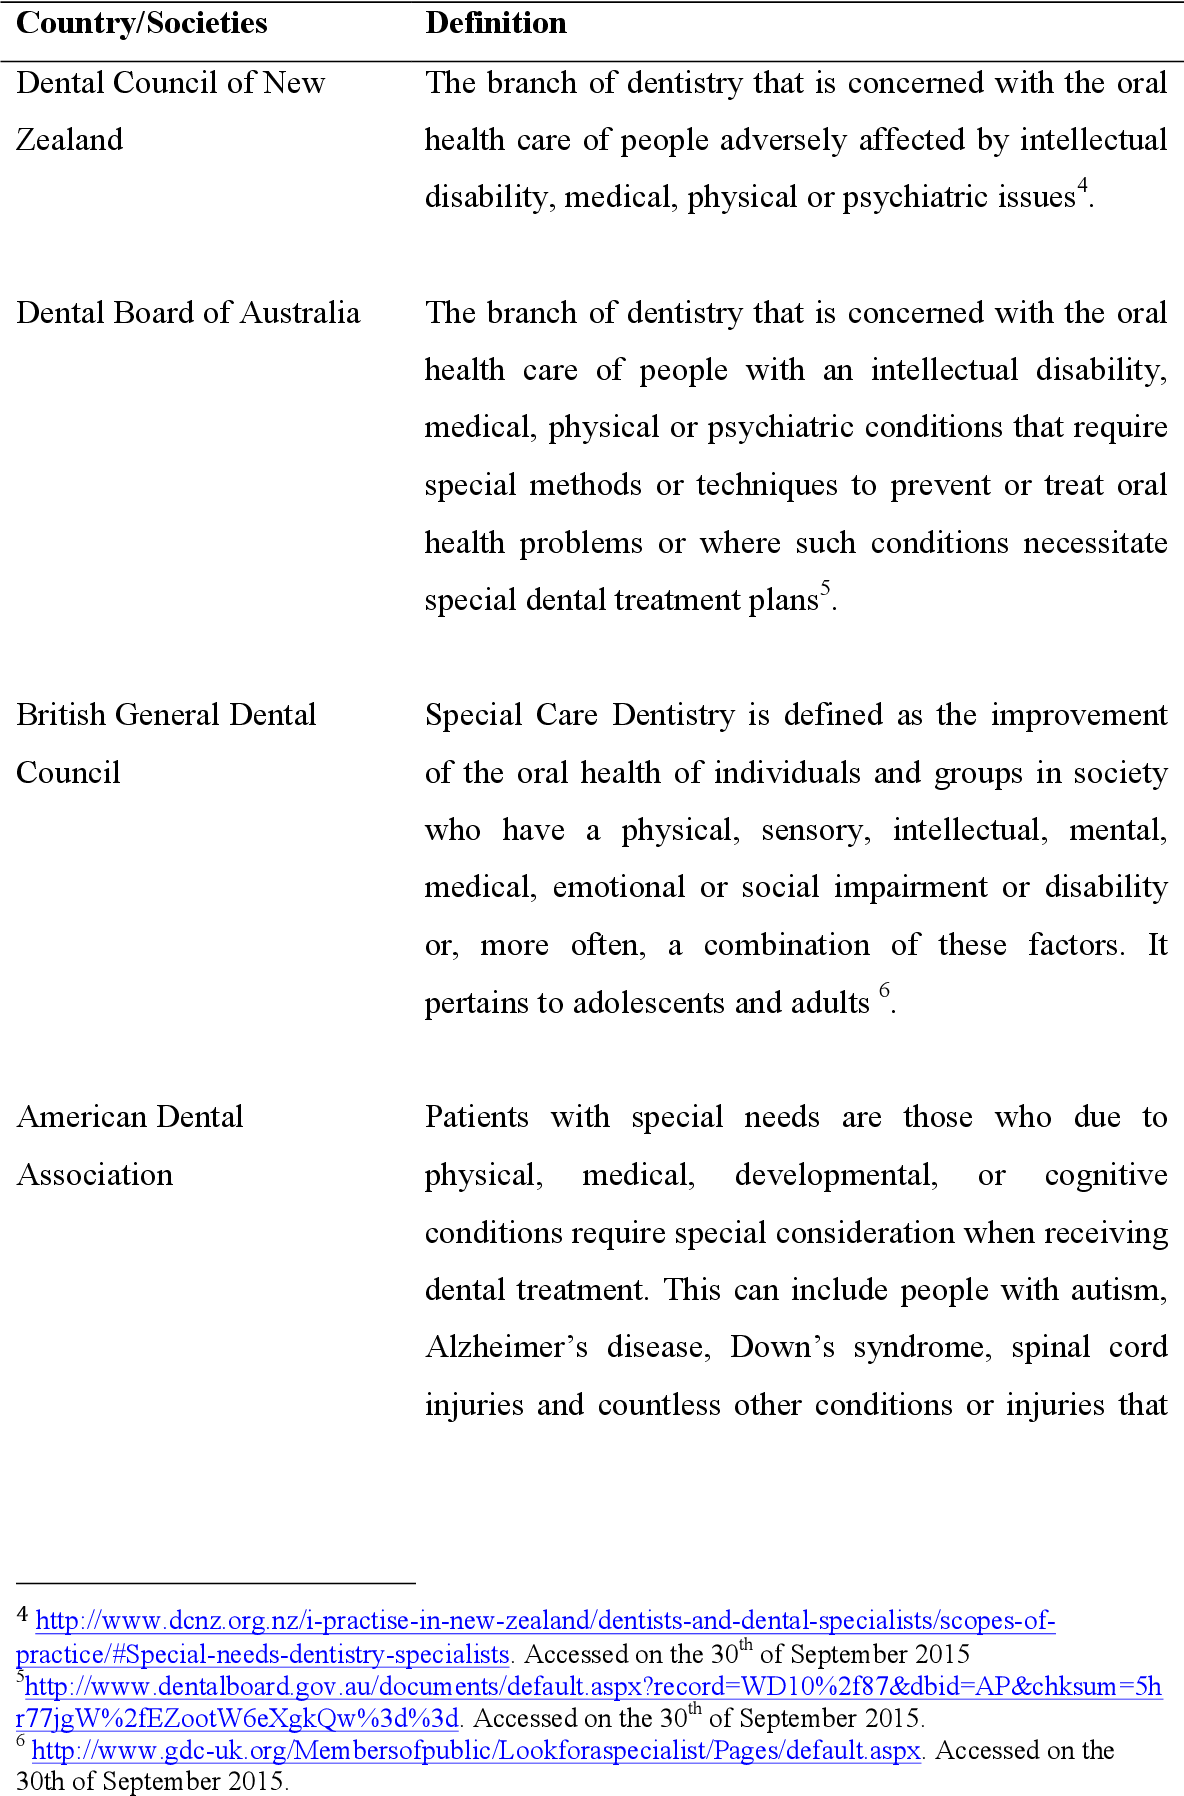 Figure 1 from Clinicians' Perspectives on Special Care